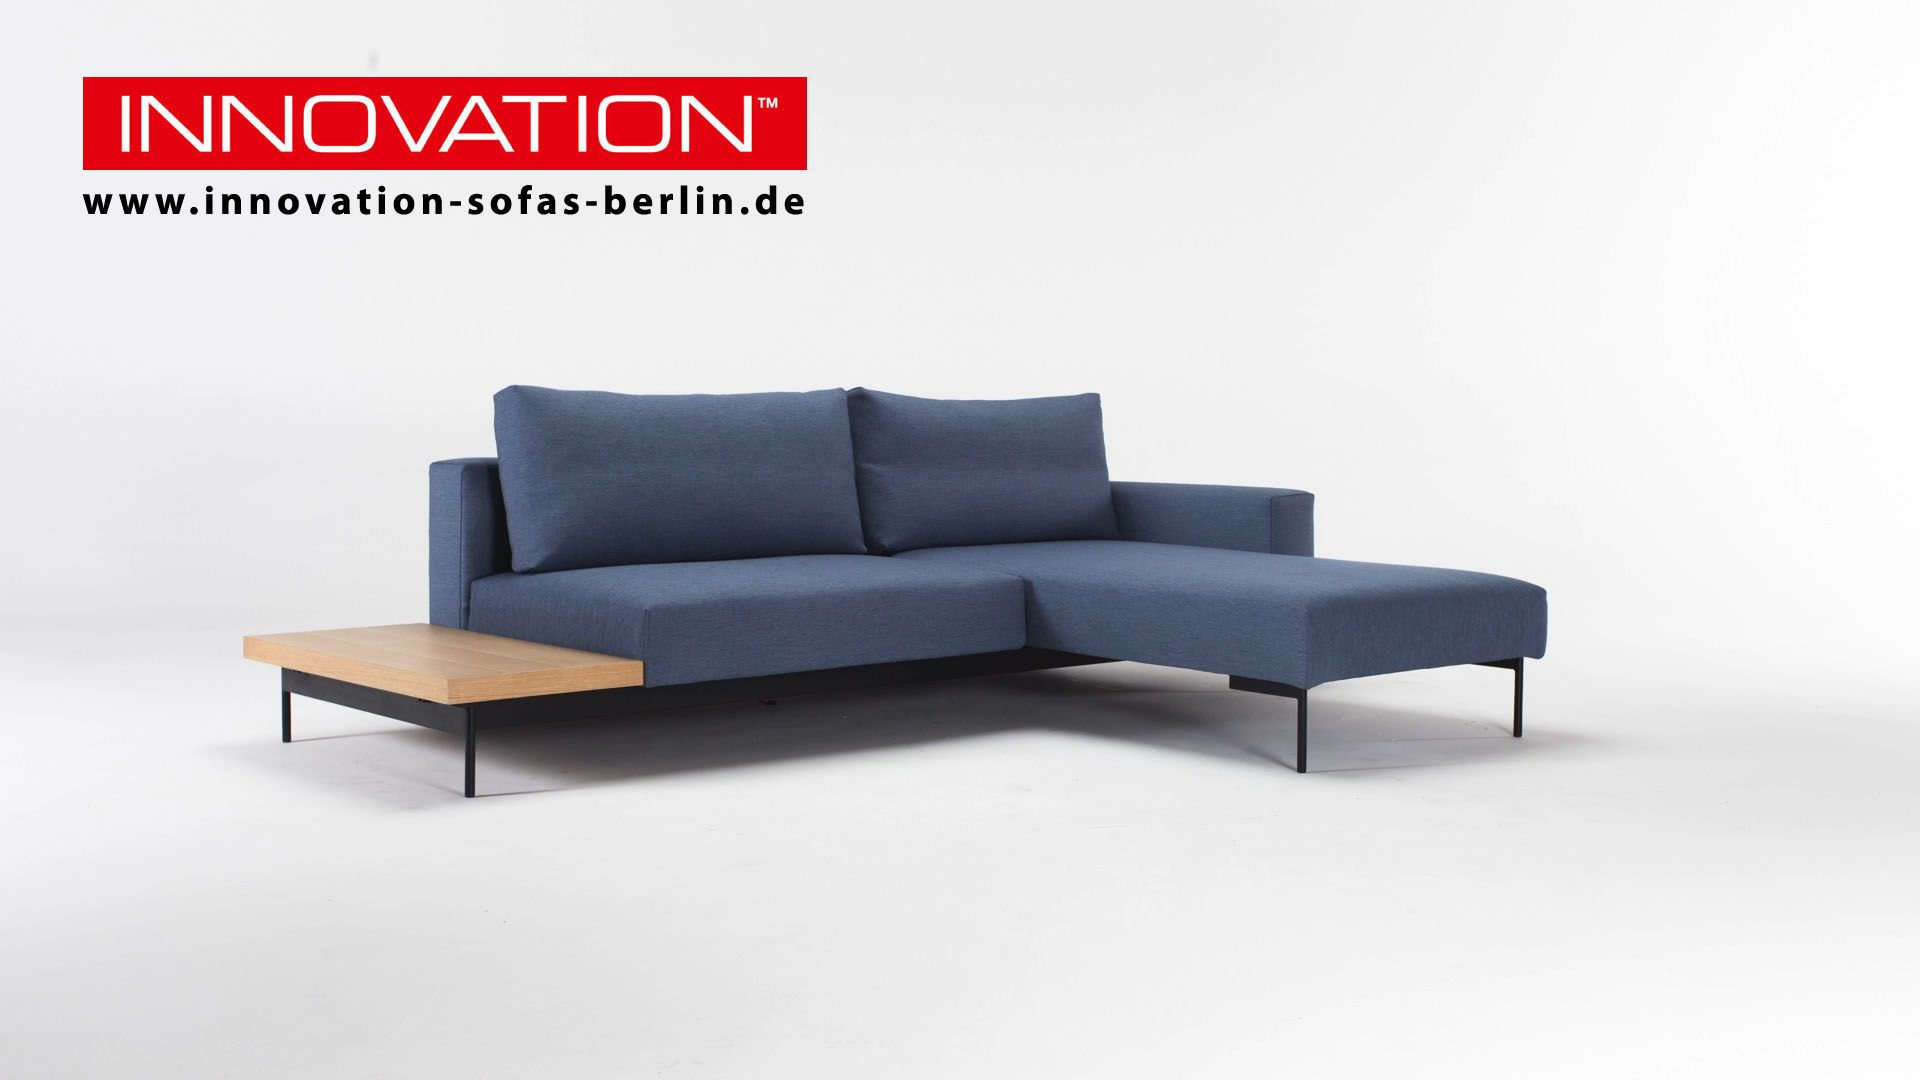 modulares schlafsofa bragi von innovation bei innovation sofas berlin sofas pinterest. Black Bedroom Furniture Sets. Home Design Ideas